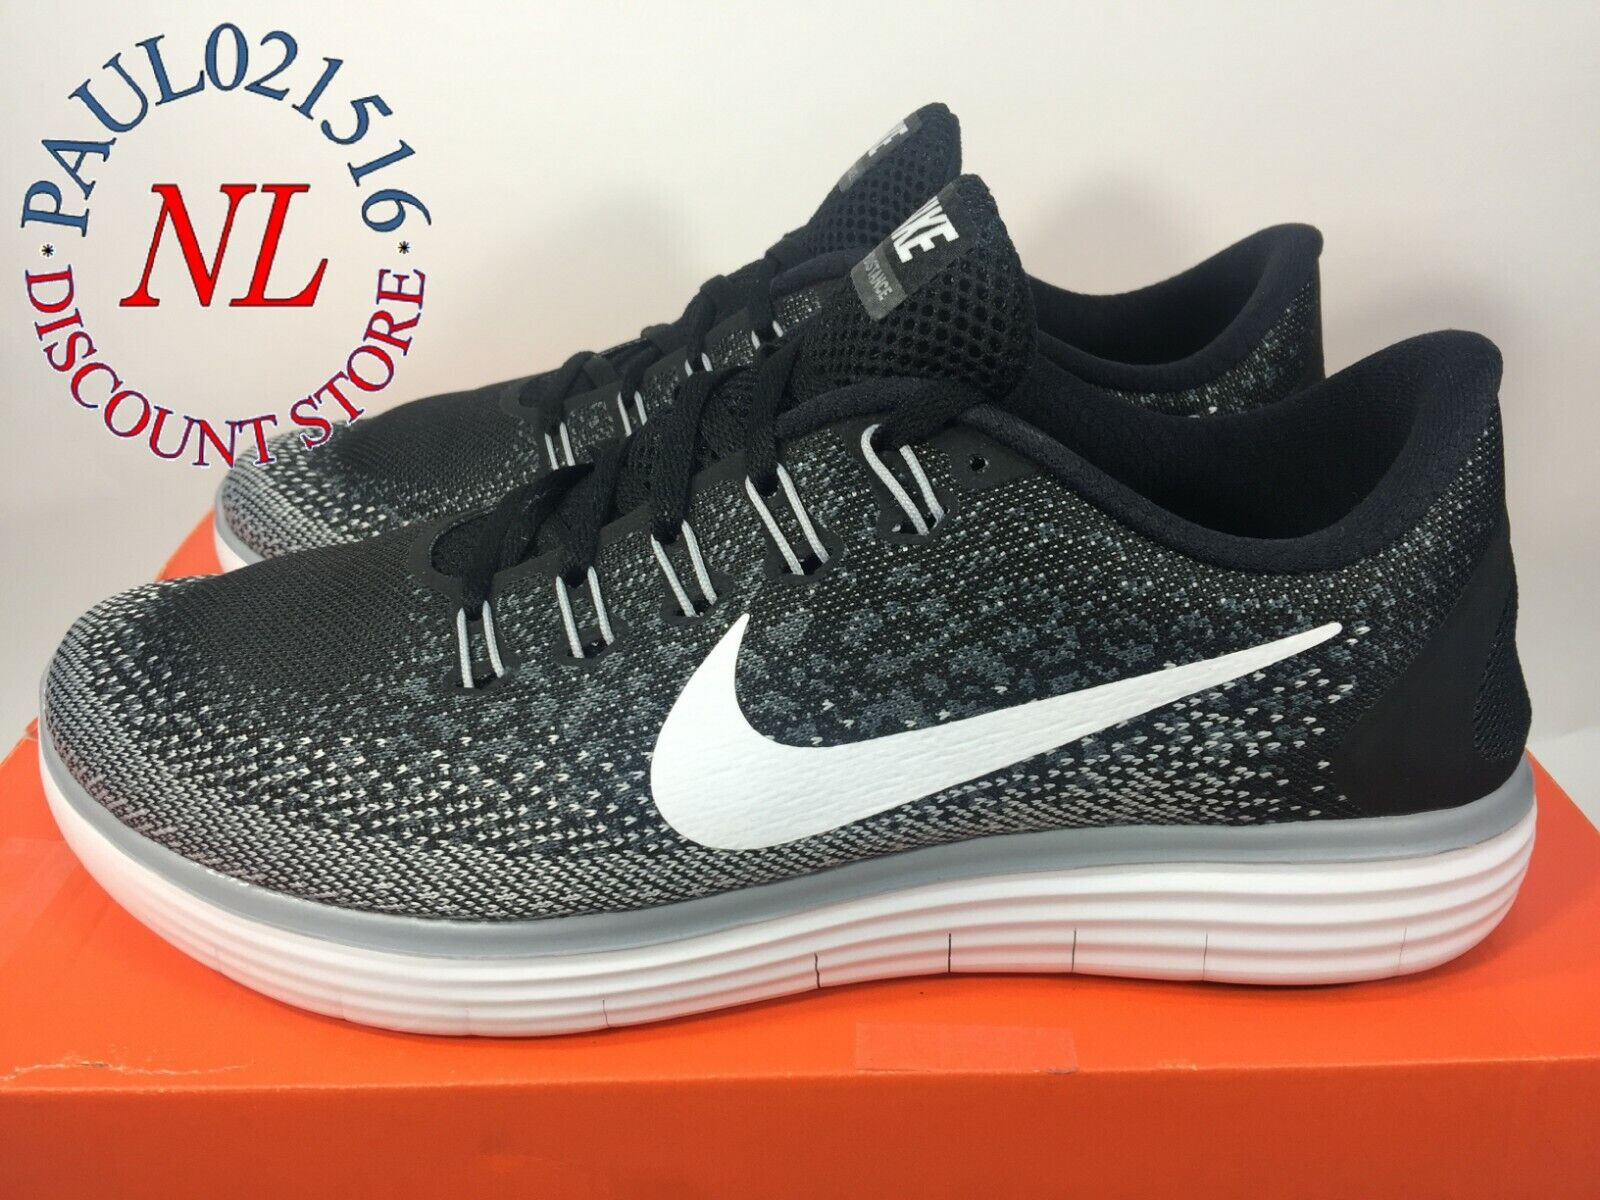 Nike Men's Free RN Distance Running shoes Style 827115-010  Size 9.5